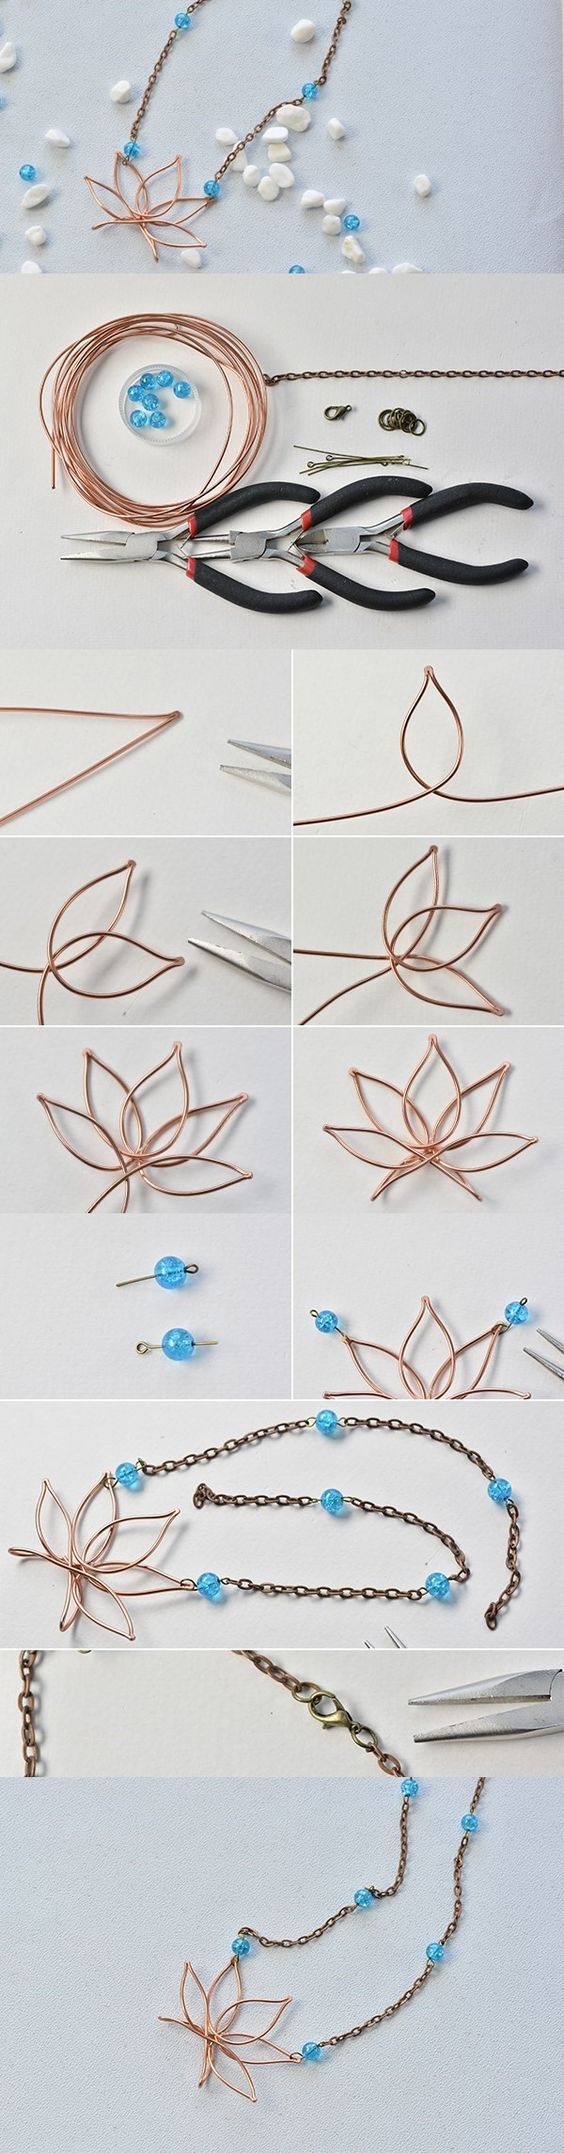 Photo of 25 Creative DIY Wire Projects 2018